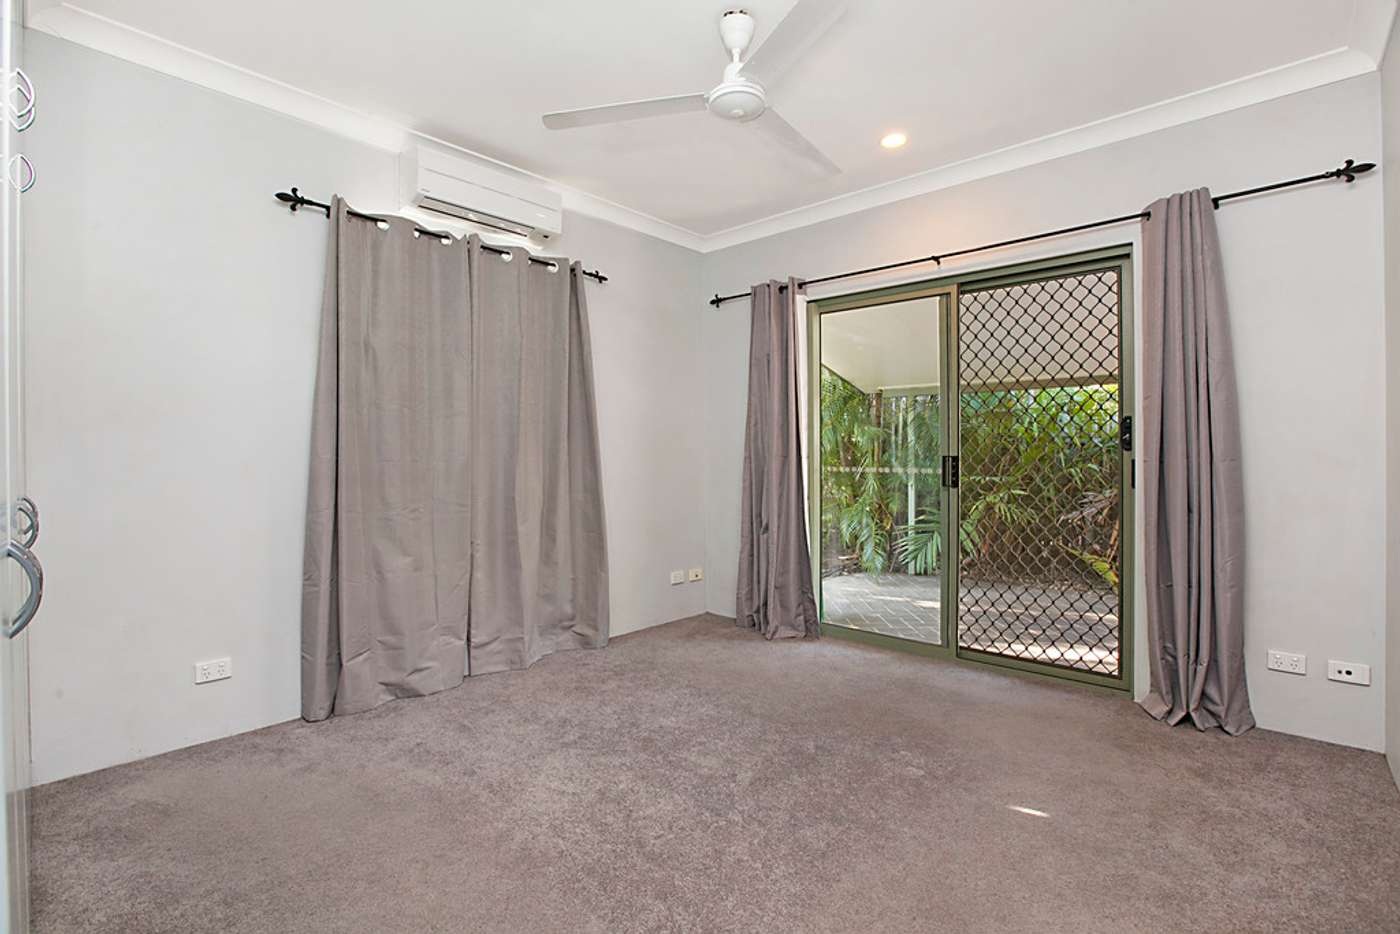 Sixth view of Homely house listing, 55 Rosebery Drive, Rosebery NT 832